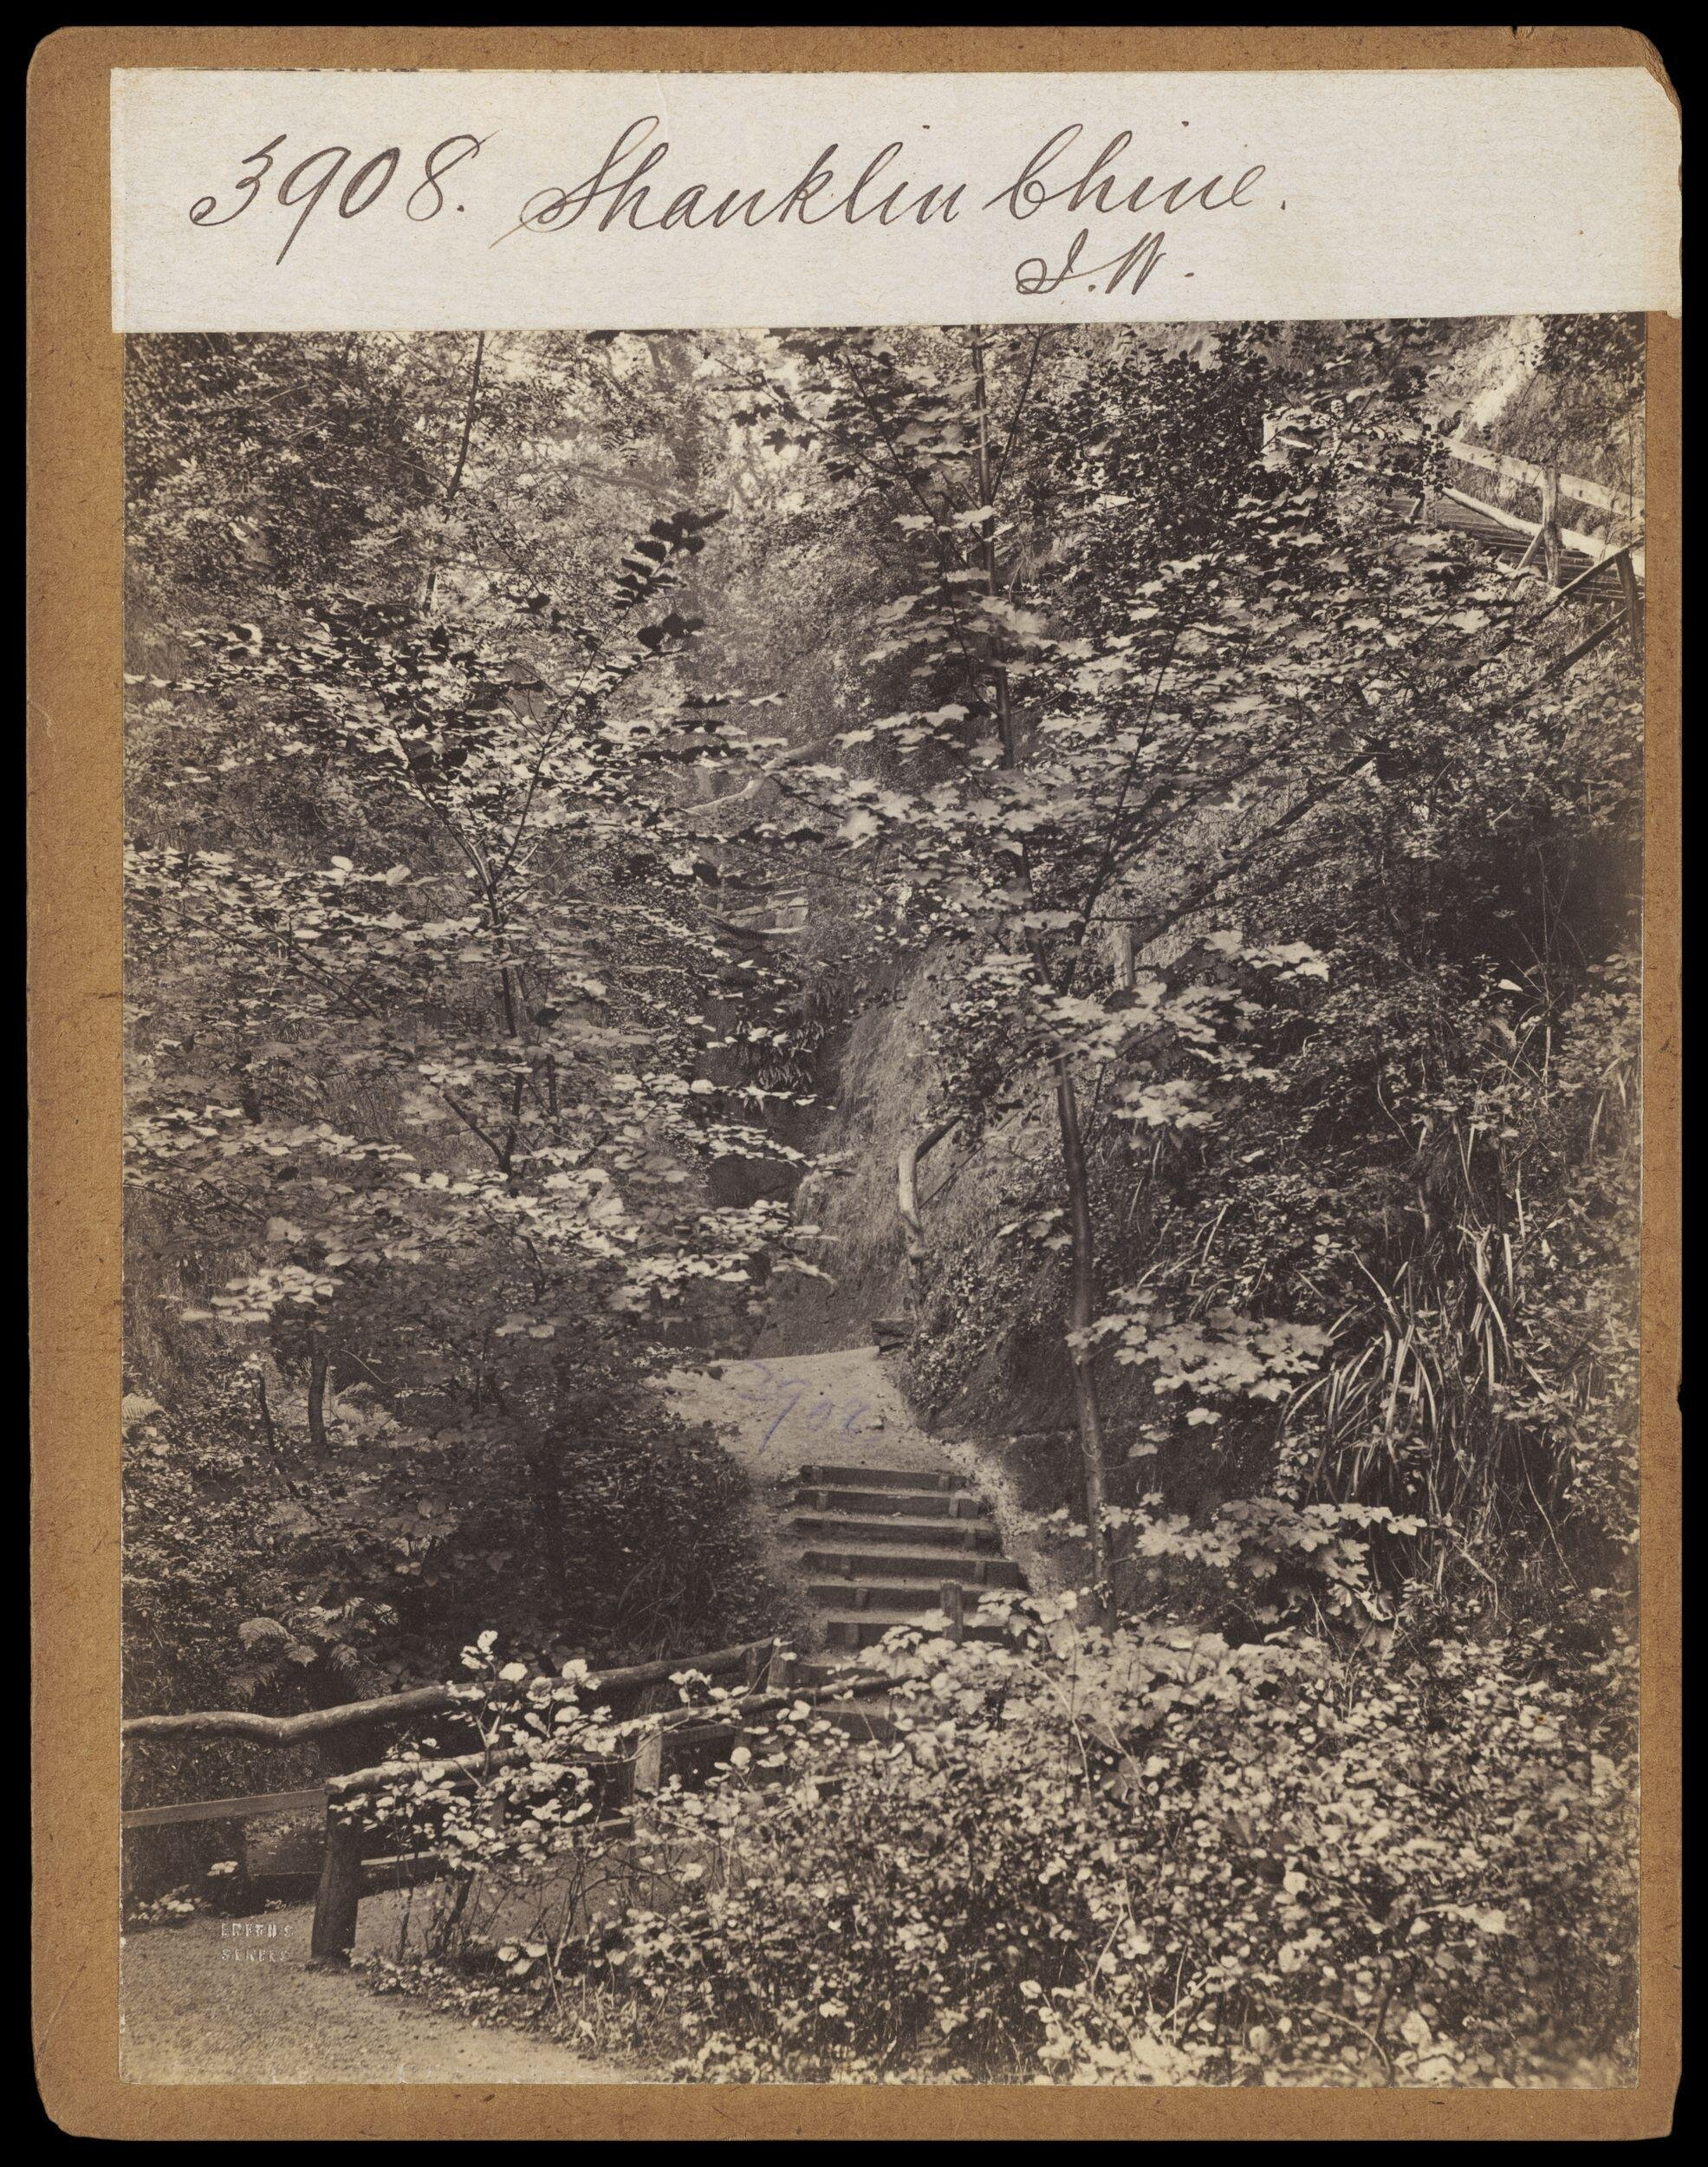 ***Photograph by Francis Frith; part of the Shanklin Chine path, c.1860 (Victoria         and Albert Museum E.208:3190-1994). Click to enlarge.